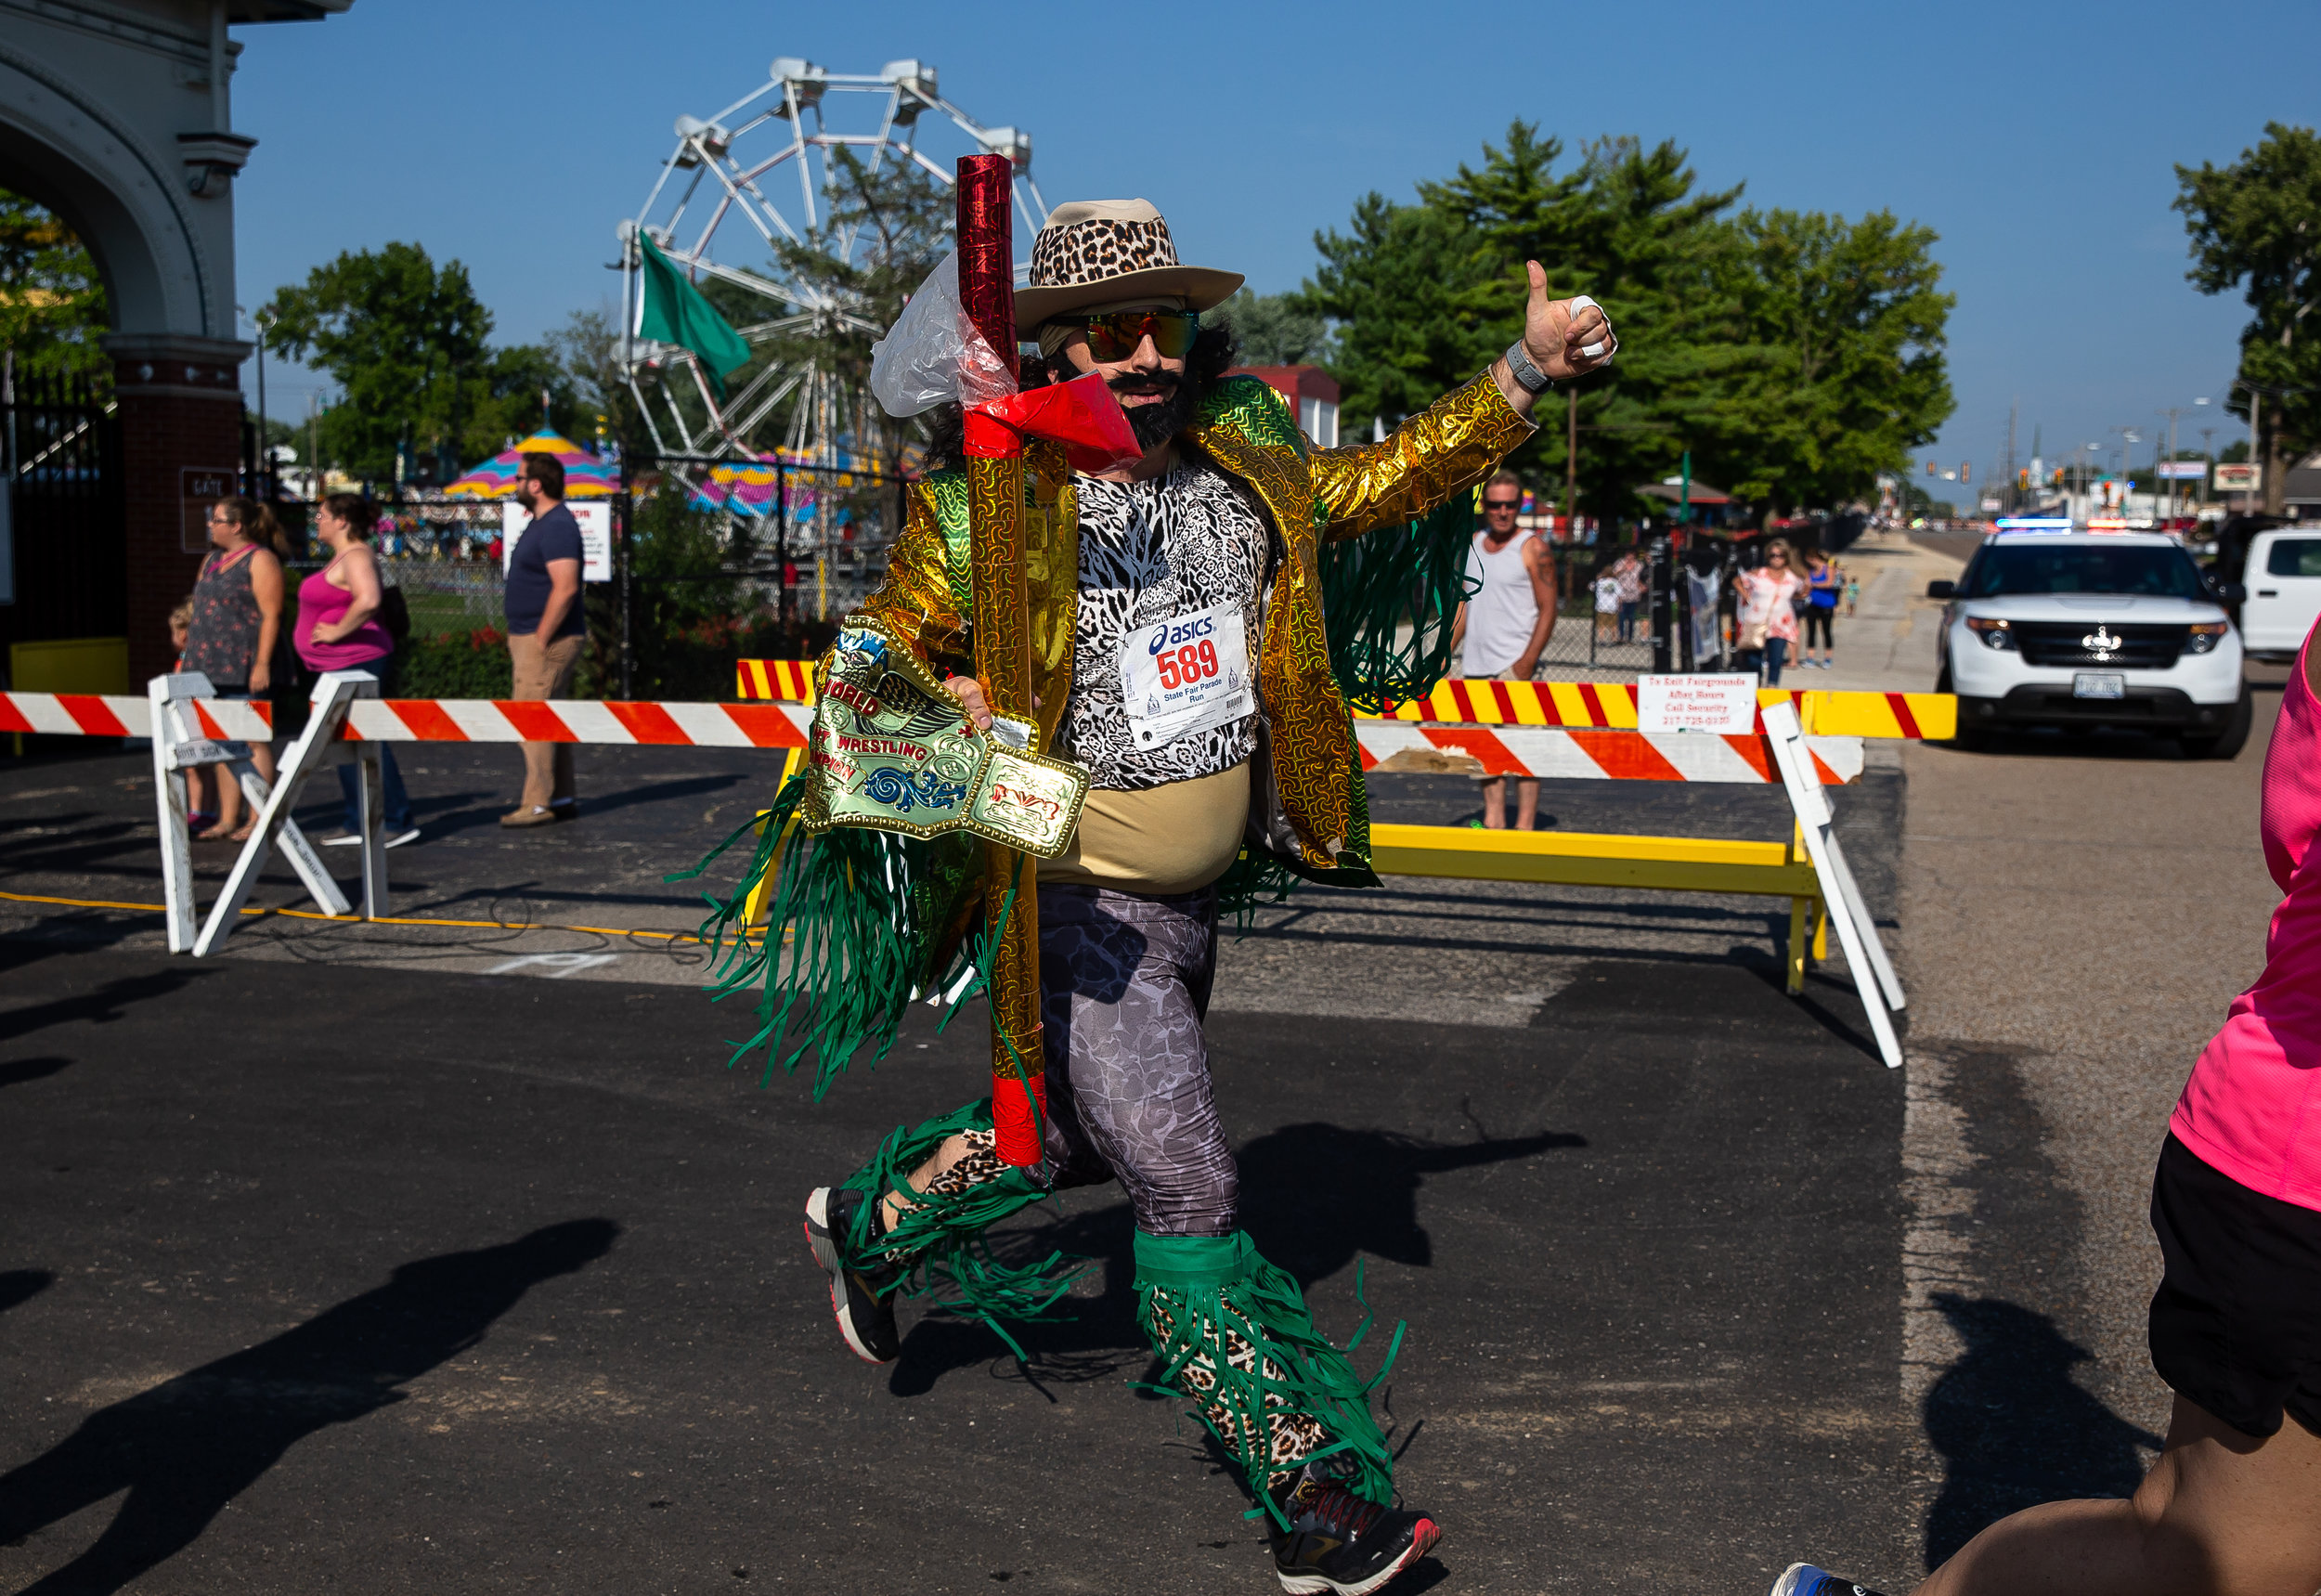 Jon Popovitch heads out the outbound leg of the Illinois State Fair Parade Run dressed as the Macho Man Randy Savage prior to the Illinois State Fair Twilight Parade, Thursday, Aug. 9, 2018, in Springfield, Ill. [Justin L. Fowler/The State Journal-Register]